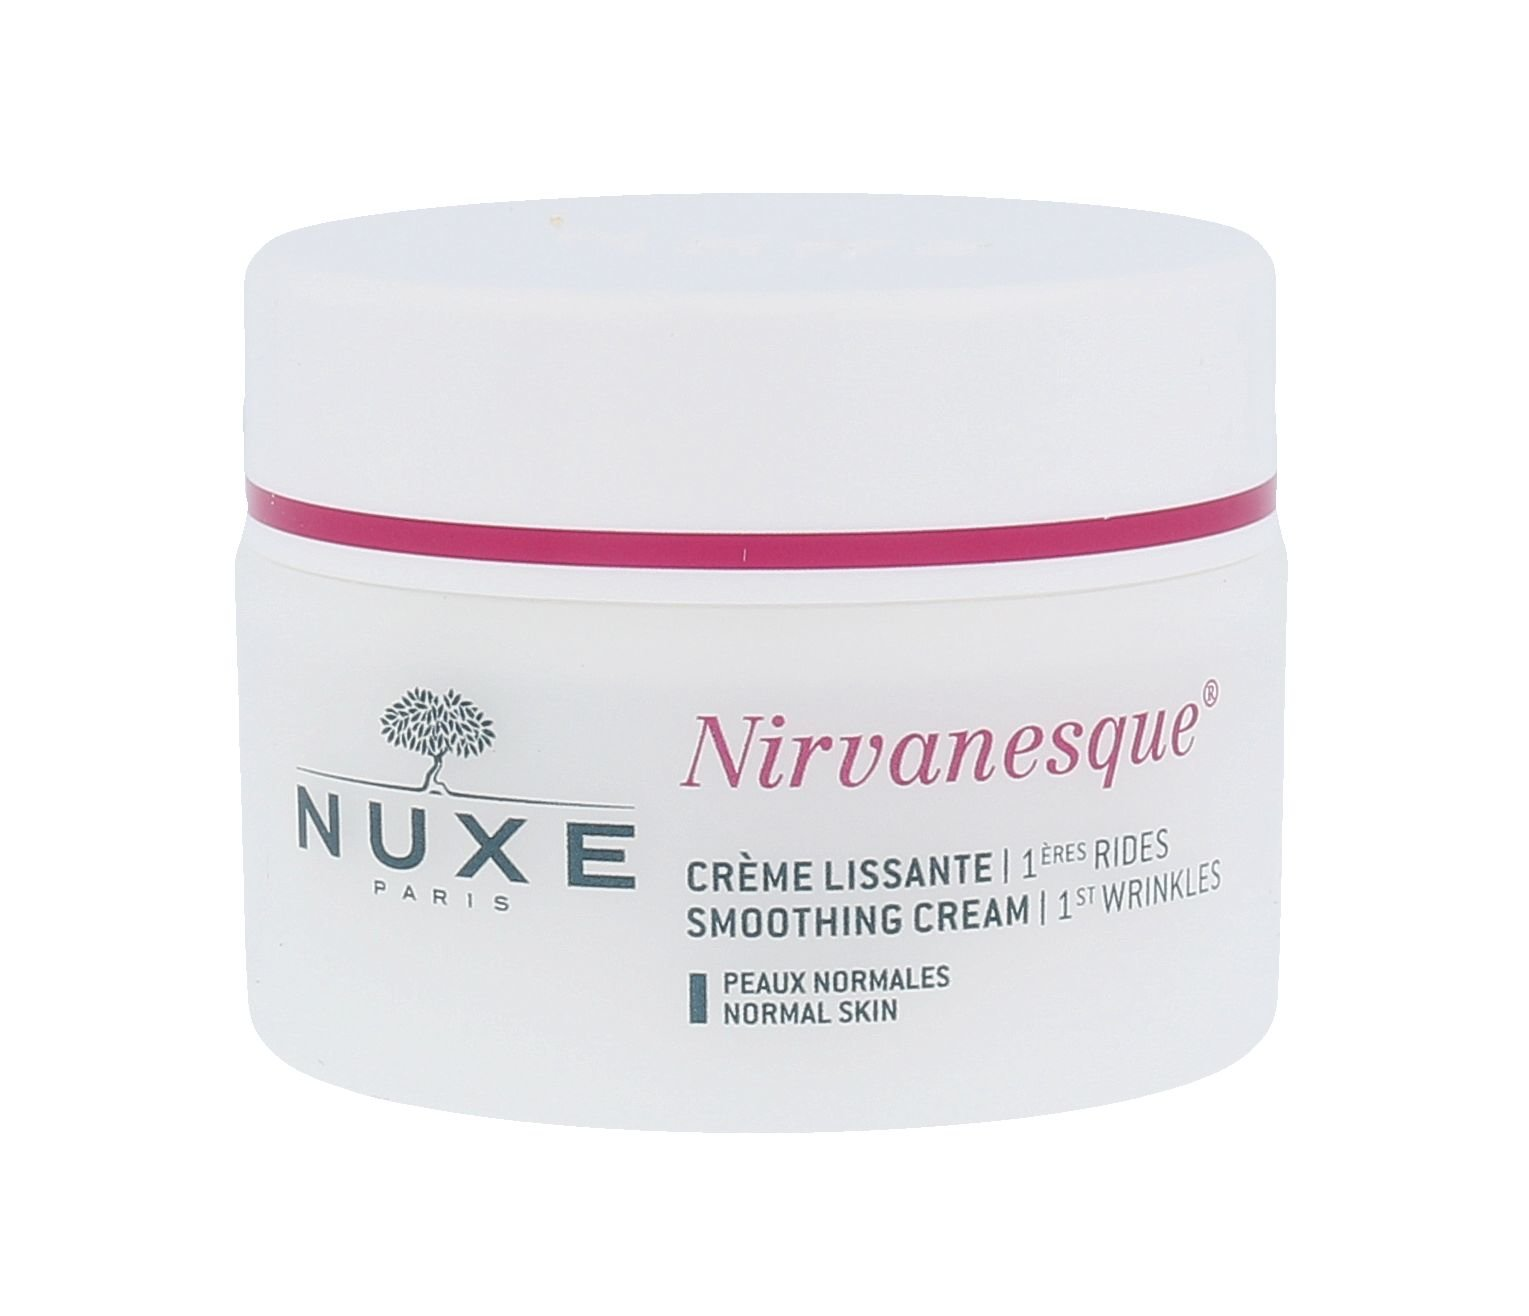 NUXE Nirvanesque Day Cream 50ml